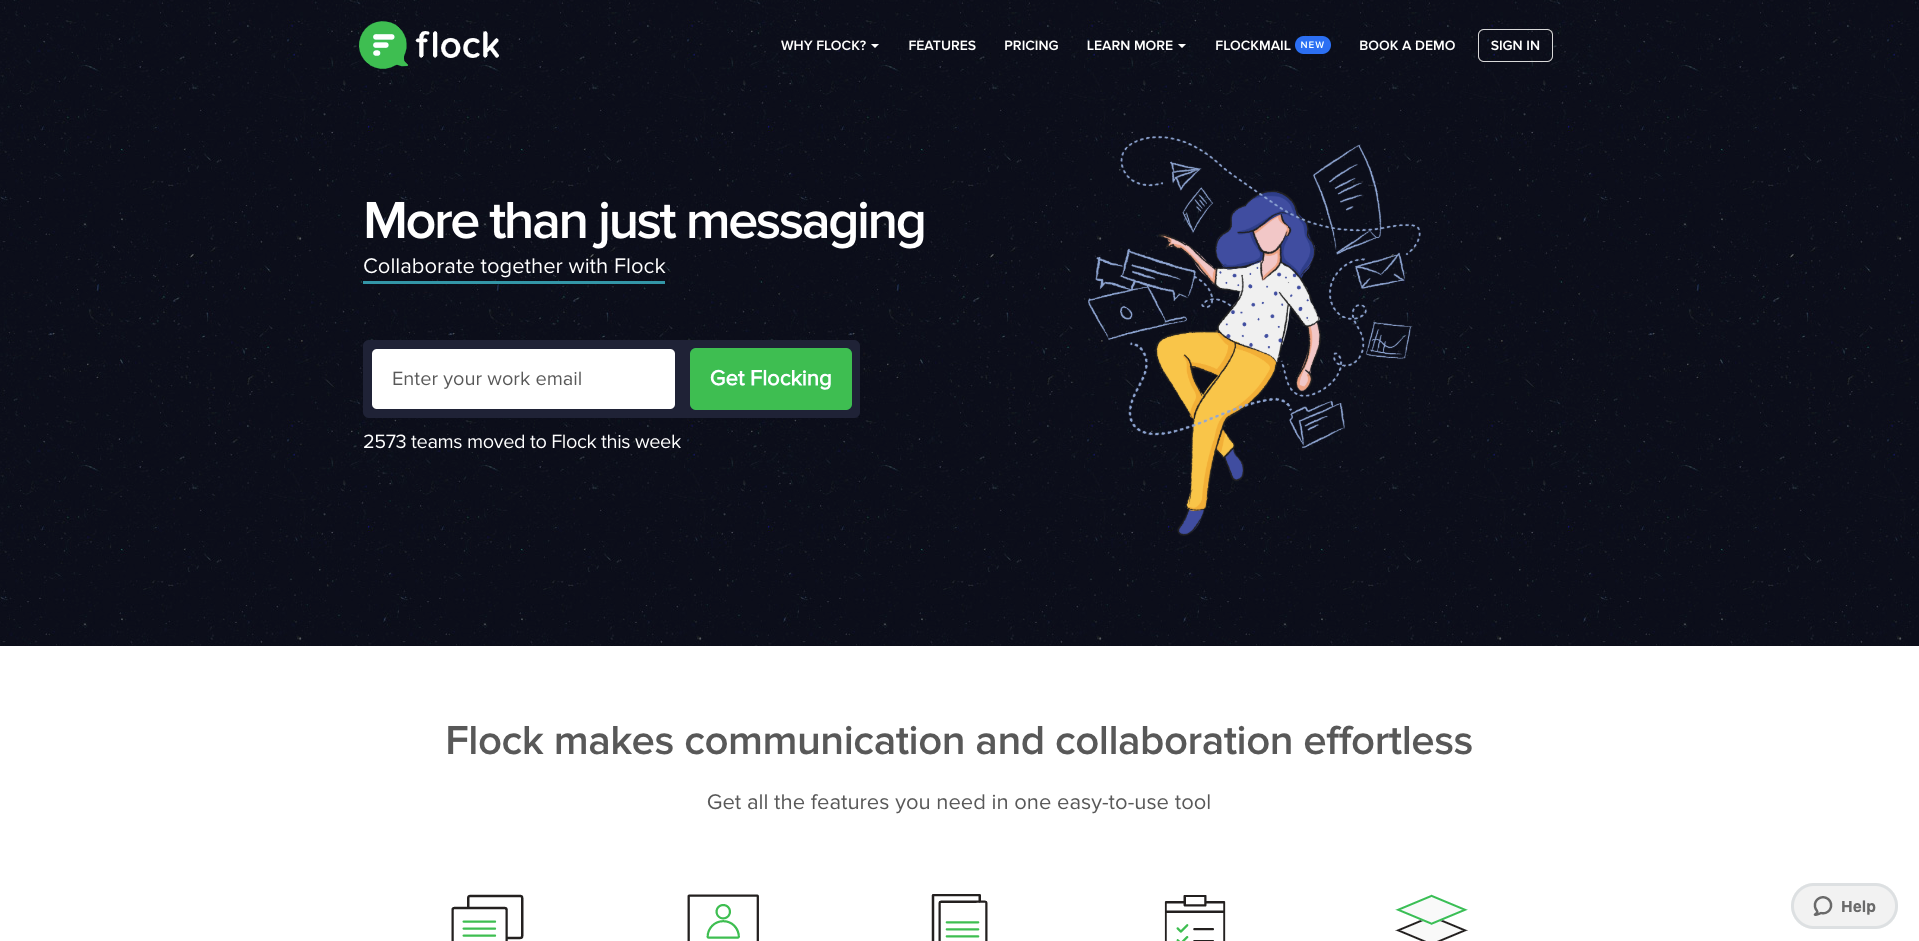 flock messaging app screenshot